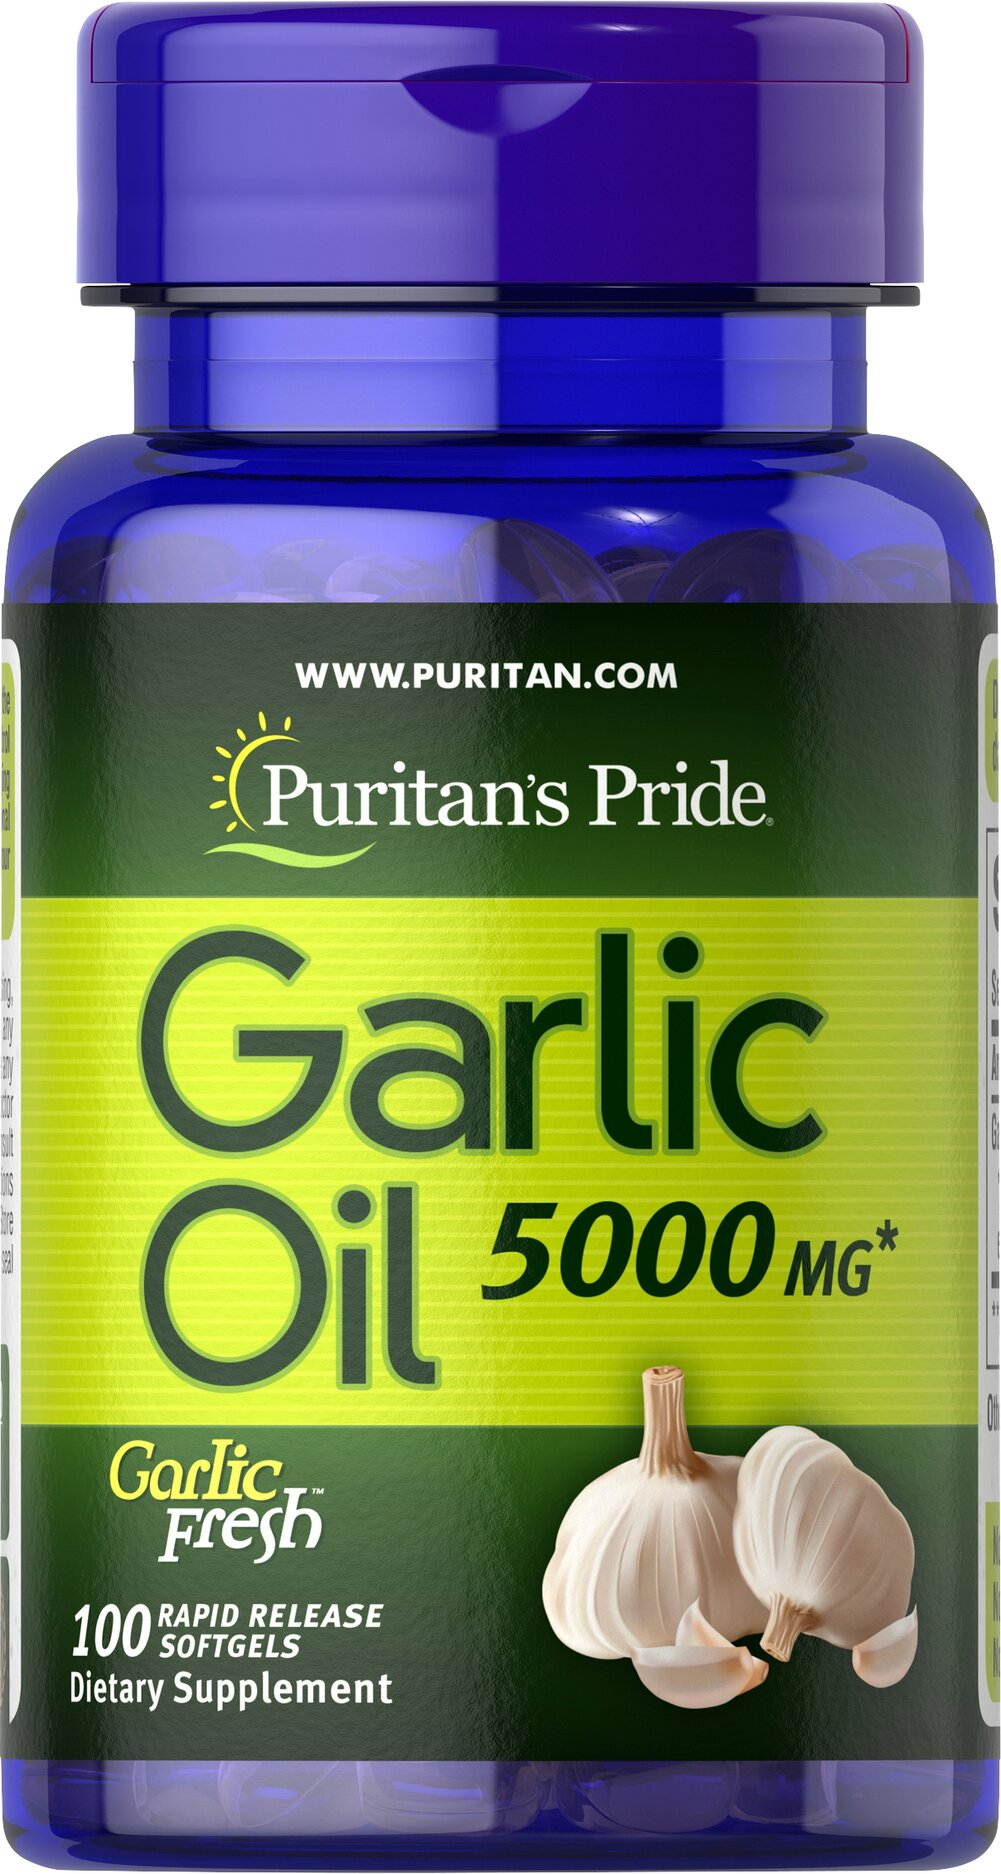 Garlic Oil 5000 mg <p></p><p>Traditionally used for Cardiovascular Health**</p><p>Whether warding  off evil spirits or flavoring sauces, Garlic has been known for its  beneficial qualities. Natural ingredients in Garlic include alliin,  allinase and allicin.</p><p></p> 100 Softgels 5000 mg $10.99